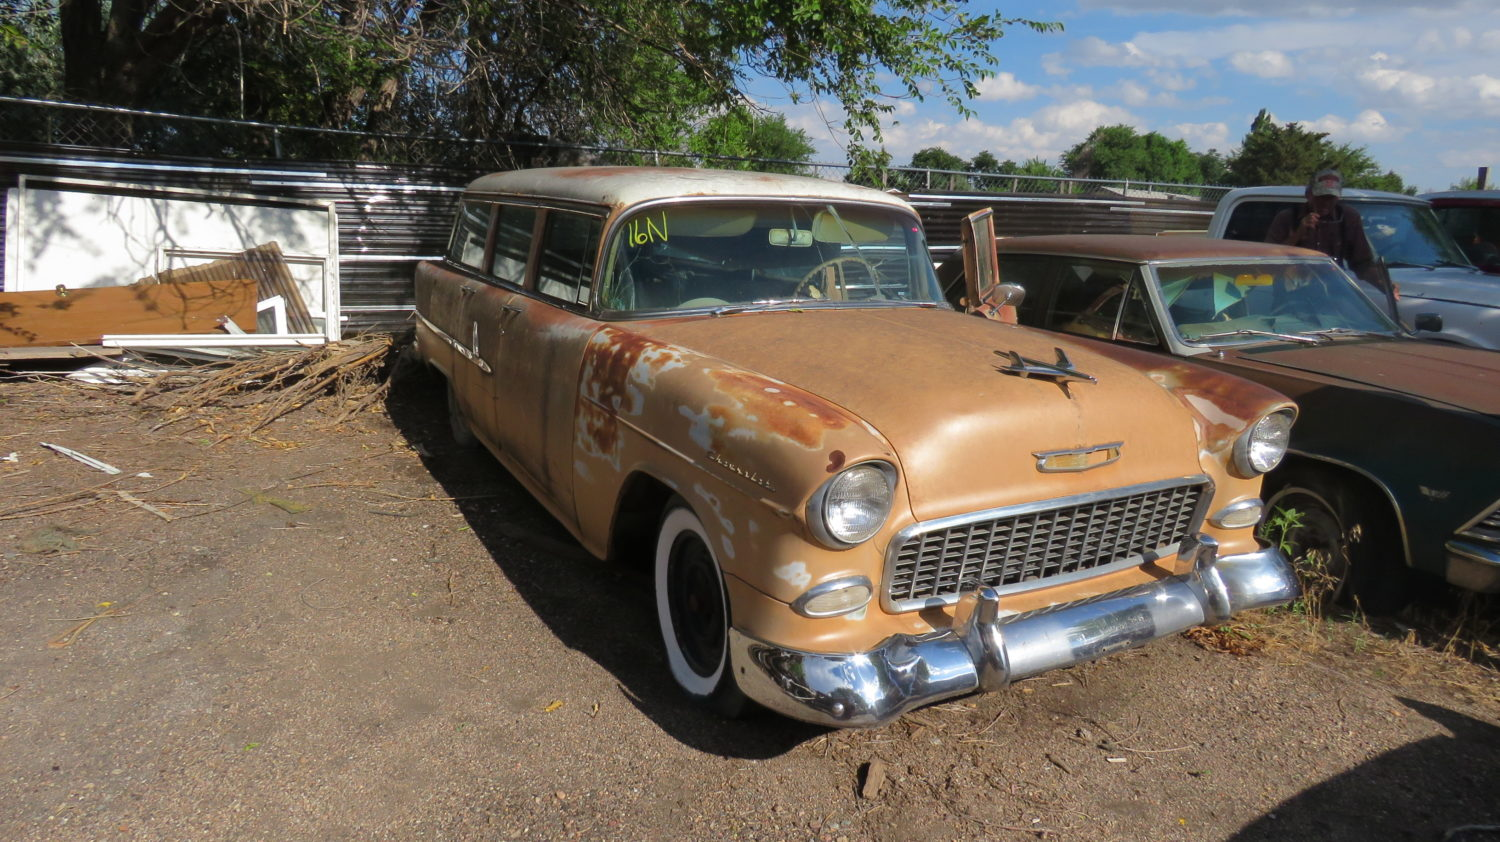 Appox 200 collector cars & trucks! The Eich & Friends Collection Auction - image 6